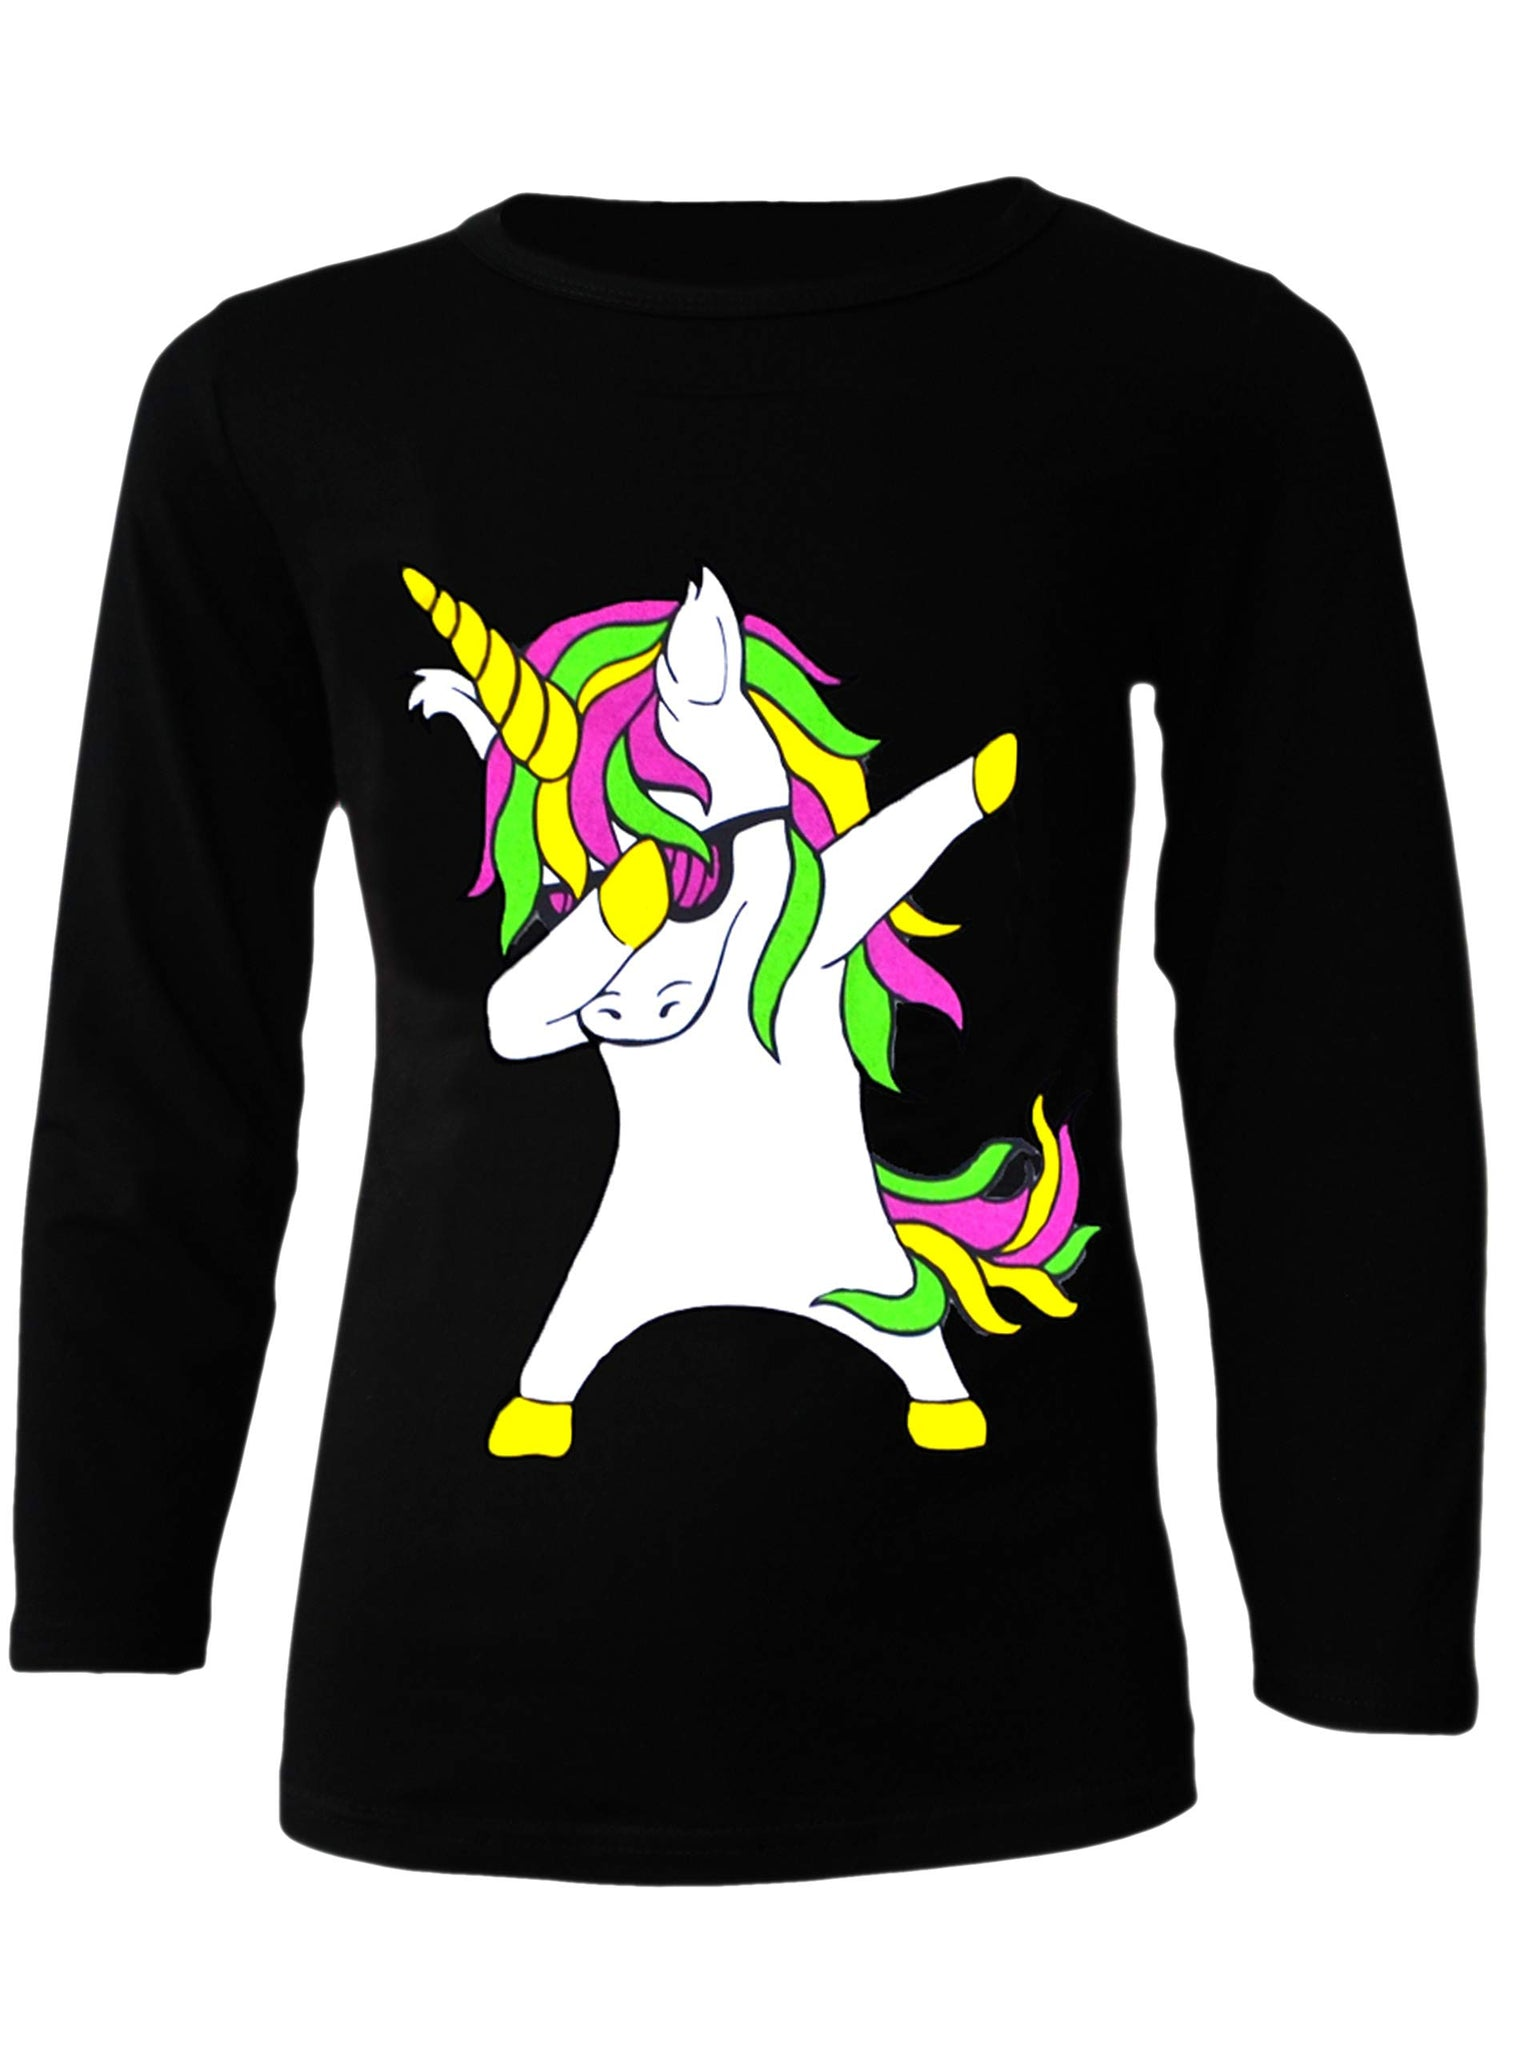 Girls Unicorn Jumper Top Kids Long Sleeve Black Grey T Shirt Jumper Ages 2-13 Years